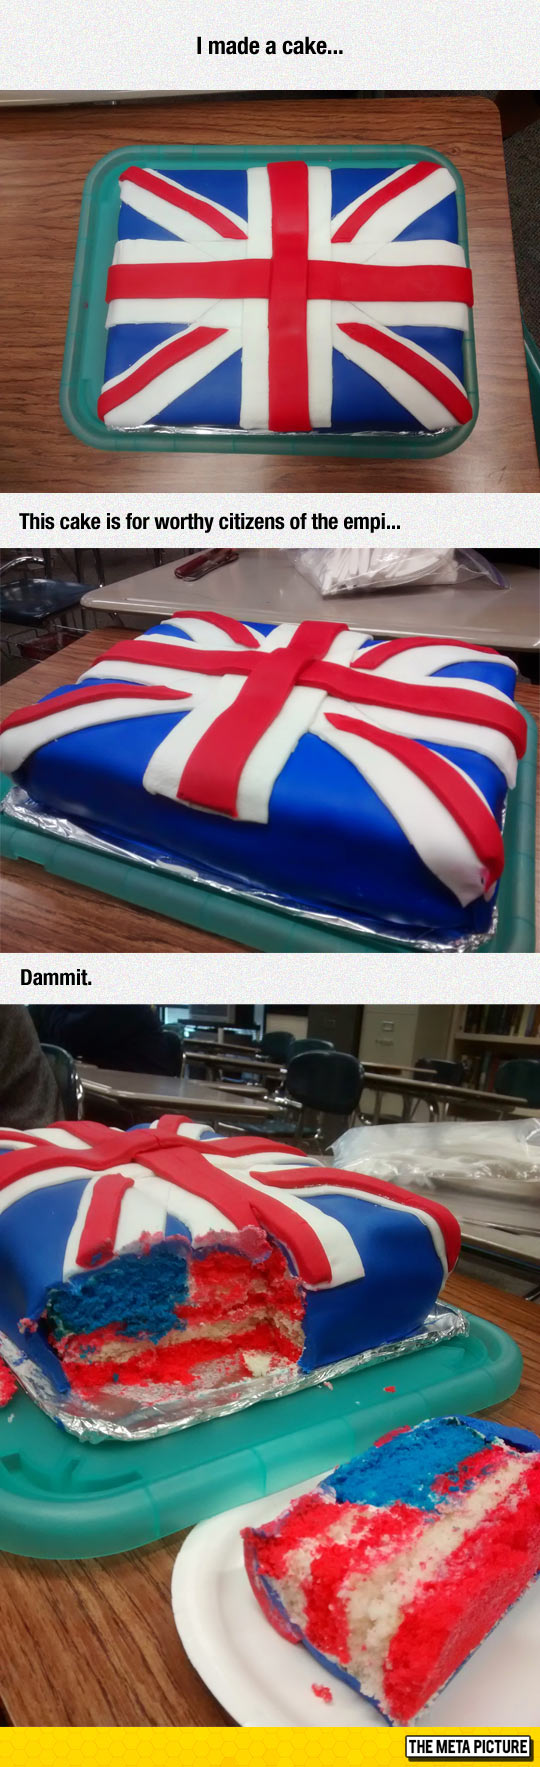 funny-cake-Britain-USA-inside-flag